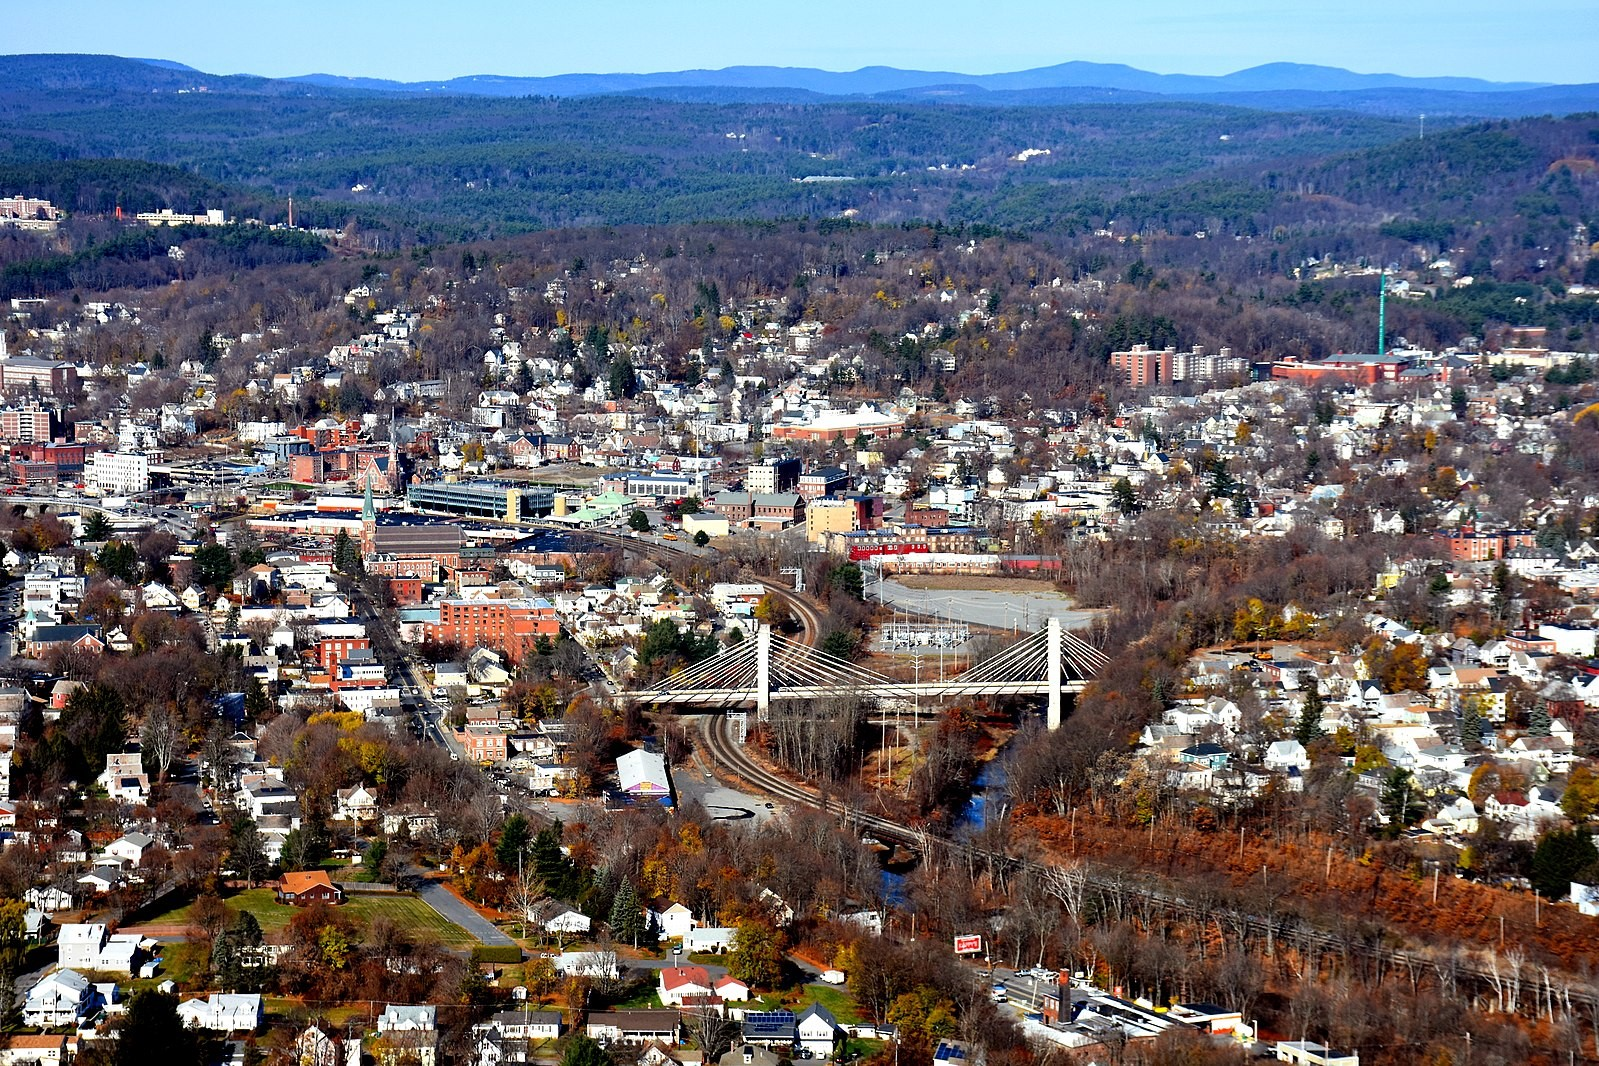 Panoramic View of Fitchburg, MA